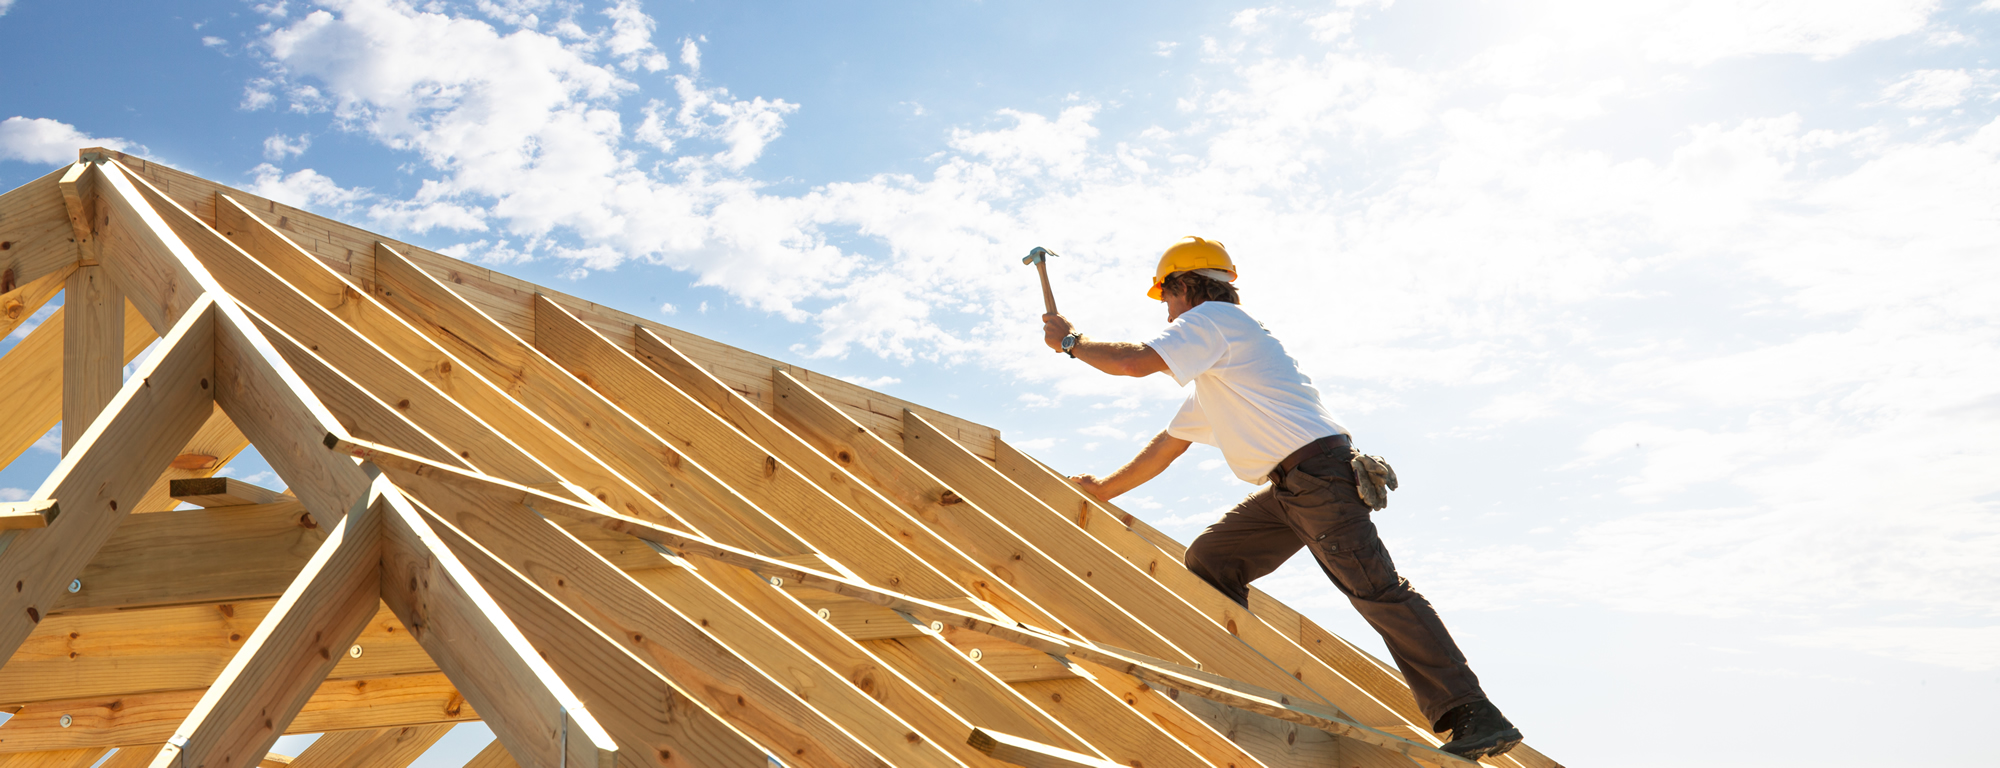 What Questions Should I Ask A Roofer Before Hiring?